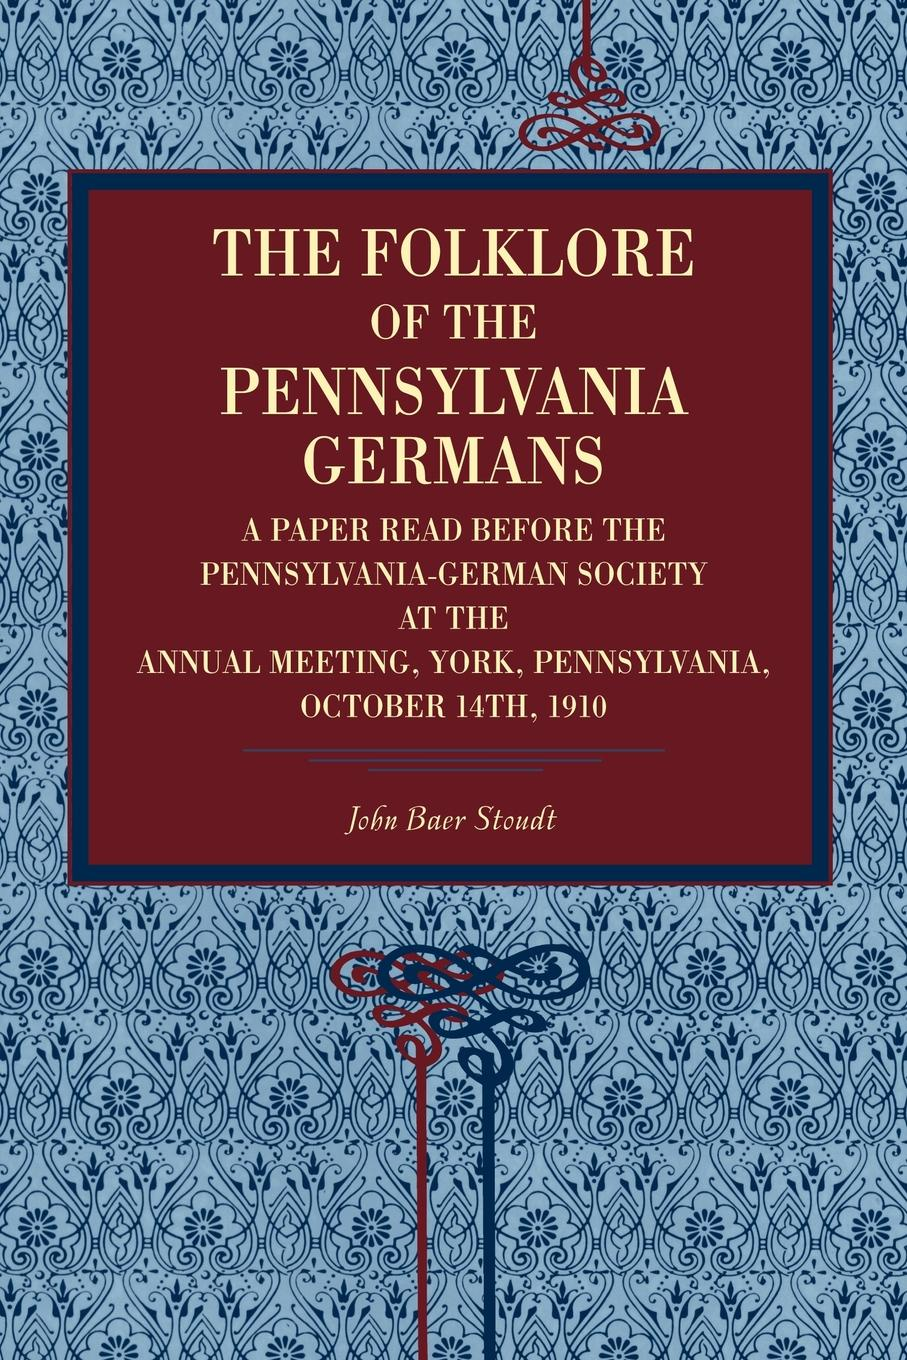 John Baer Stoudt The Folklore of the Pennsylvania Germans. A Paper Read Before Pennsylvania-German Society at Annual Meeting, York, Pennsylvania, October 14th,